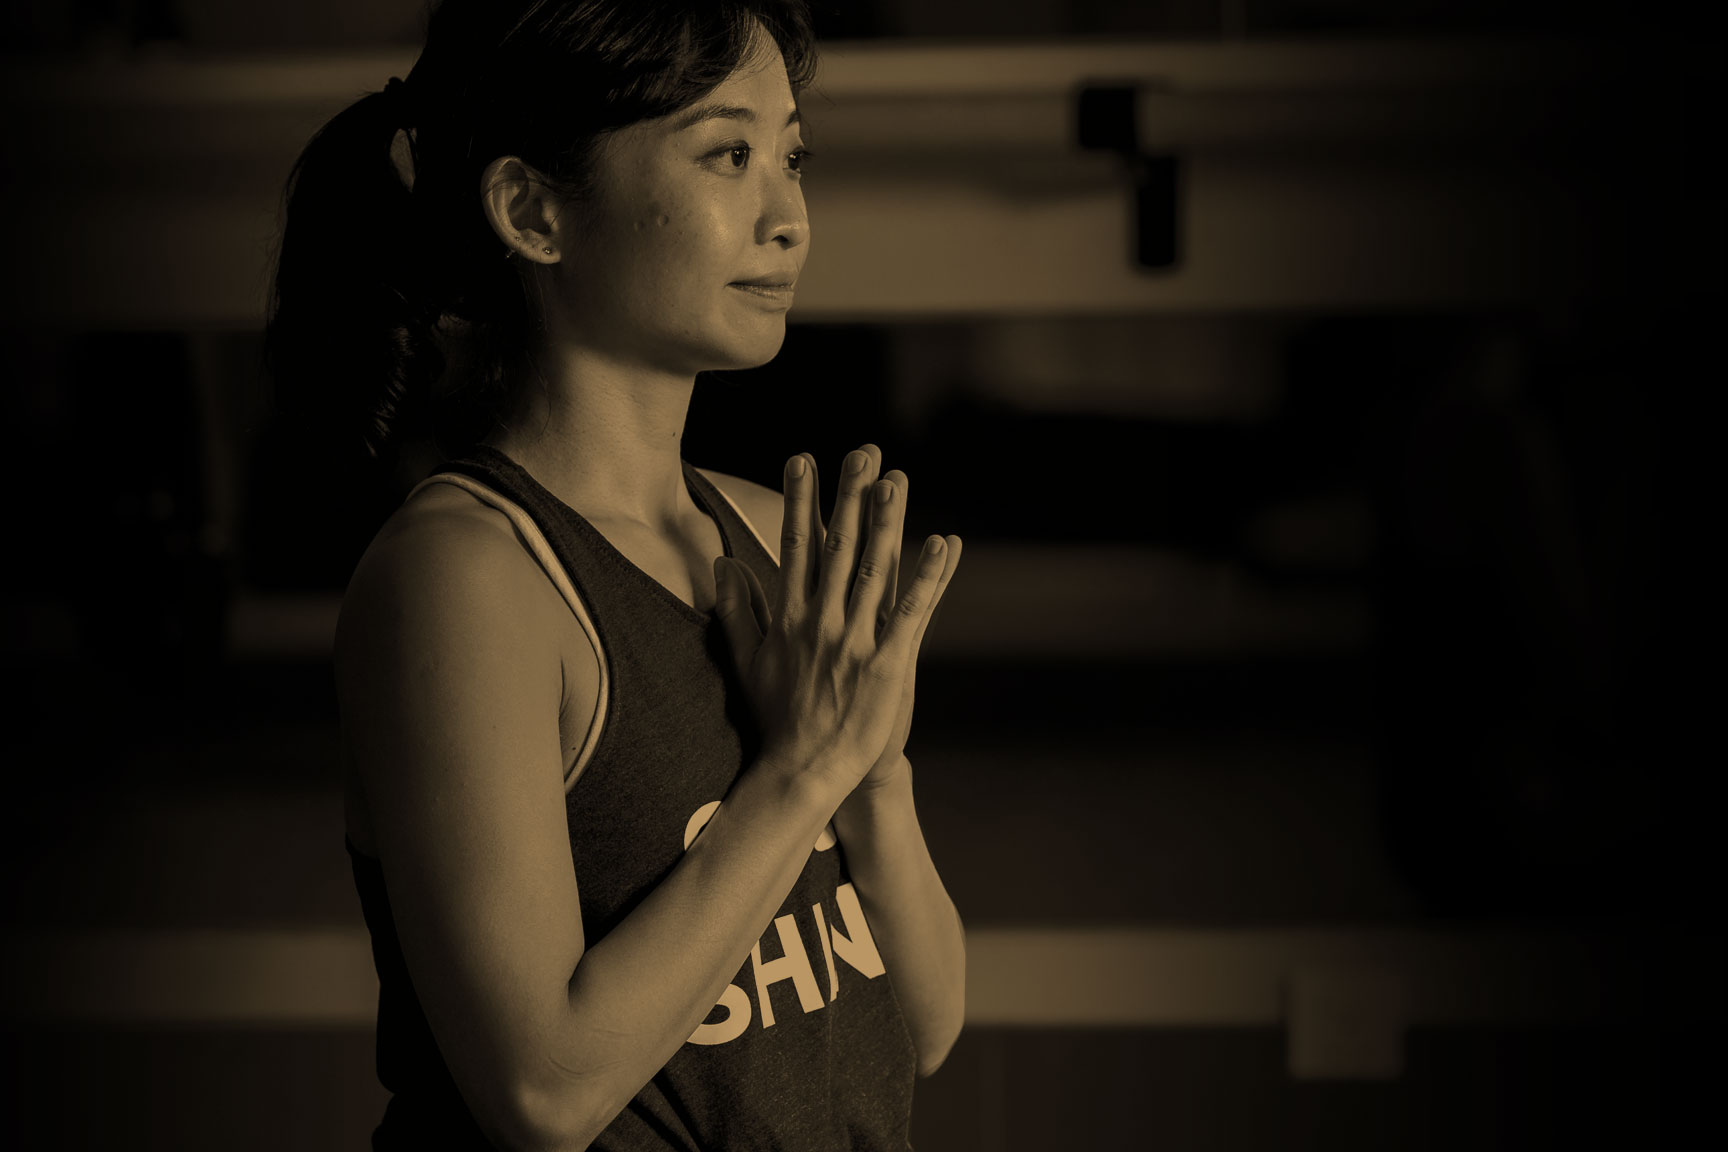 Yoga - Empower your yoga journey in one of our welcoming, candle-lit classes that inspire confidence and well-being that lasts long after you roll up your mat.